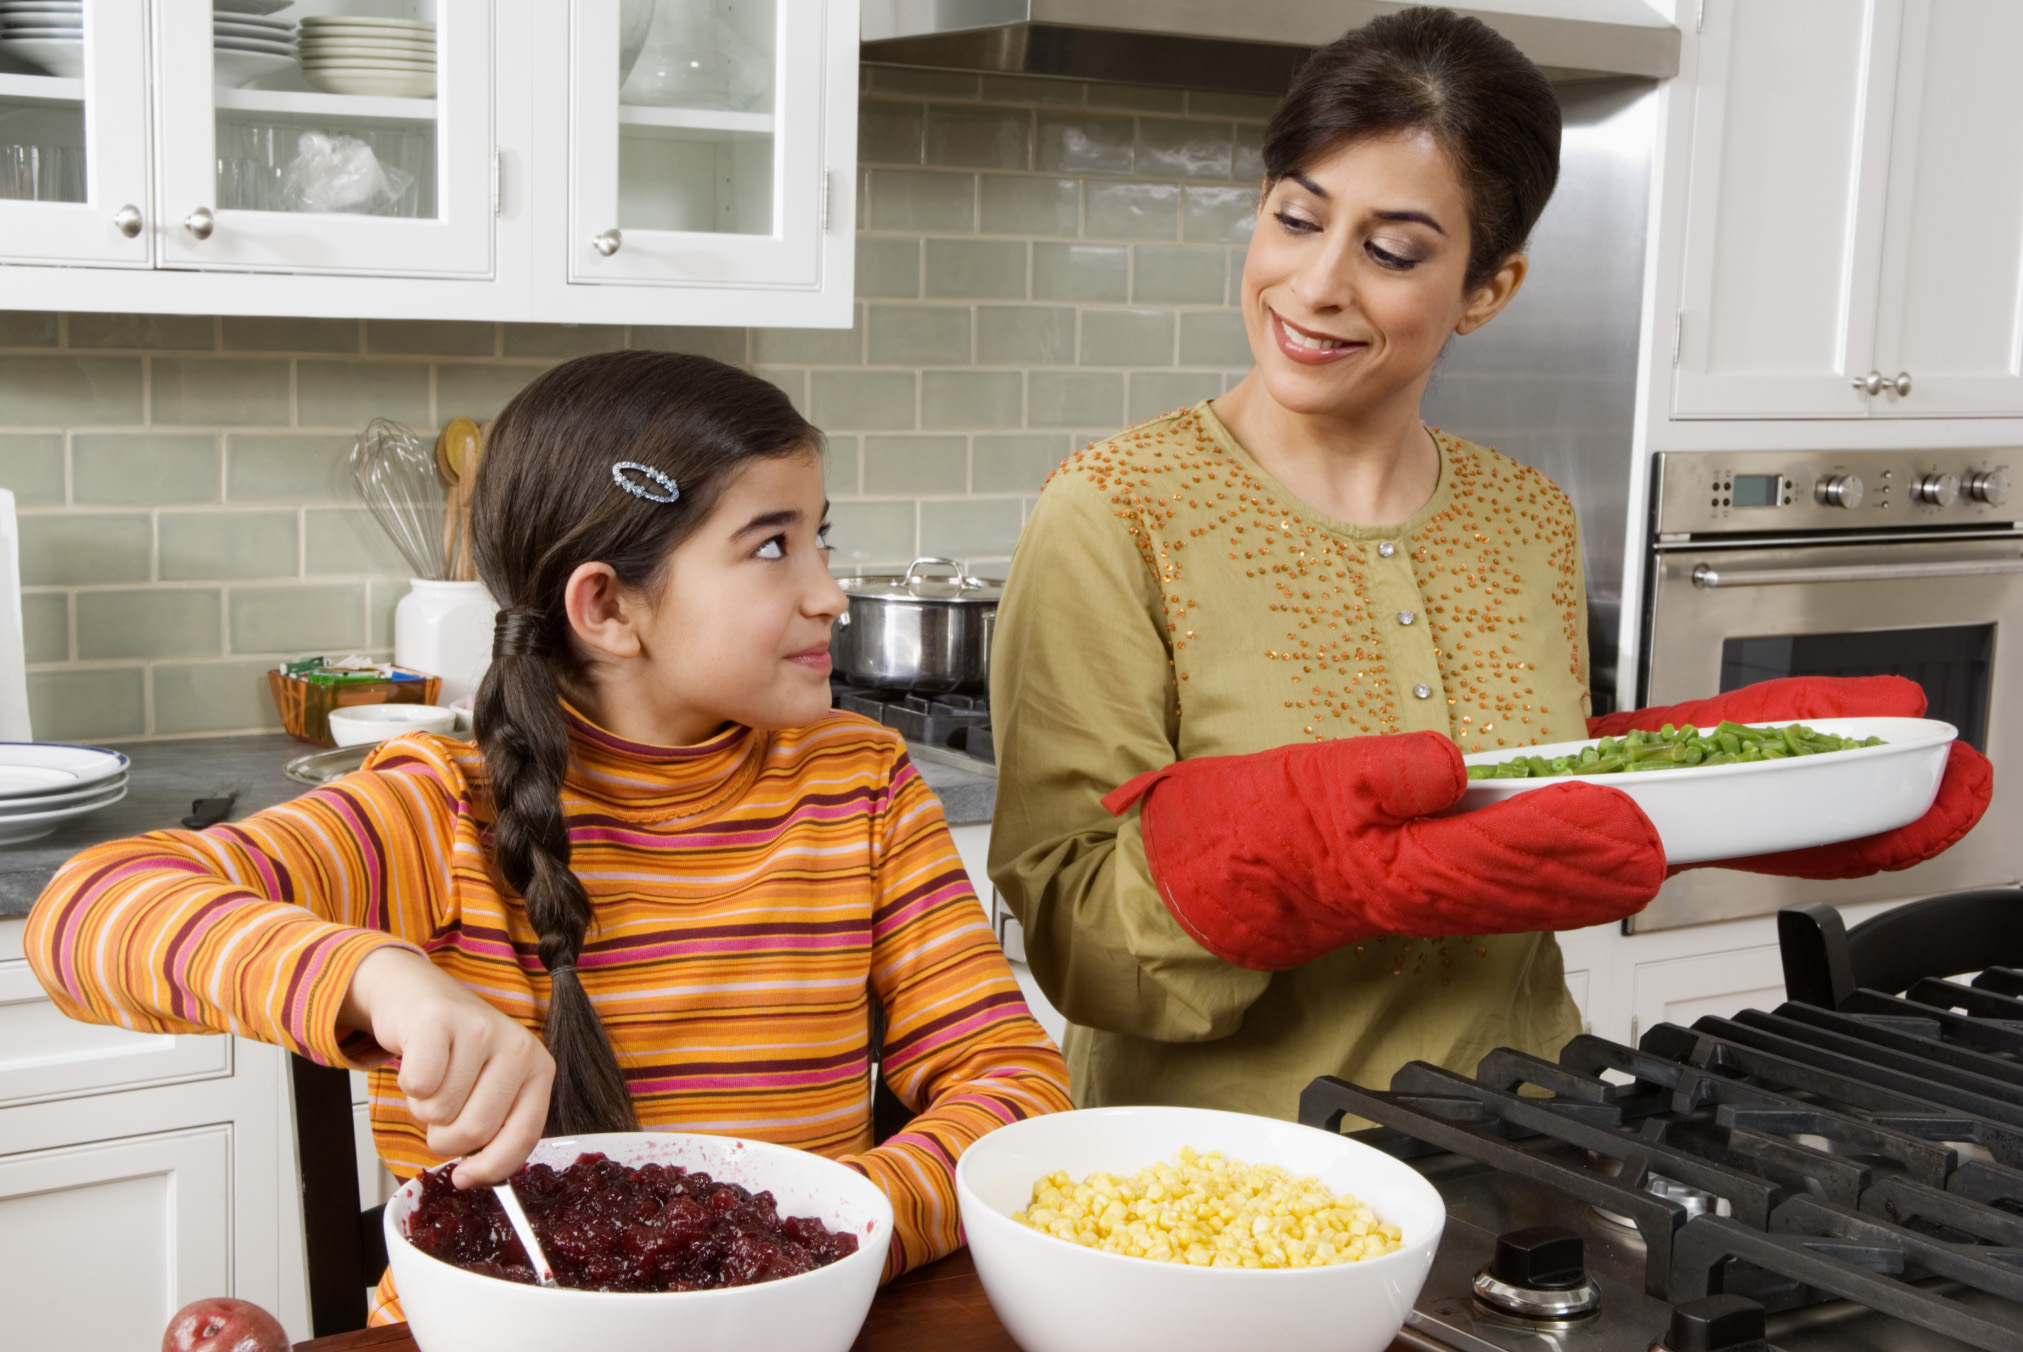 Woman-cooking-with-daughter-holding-pan-with-oven-mitts-crop-ThinkstockPhotos-76766403-Creatas Images